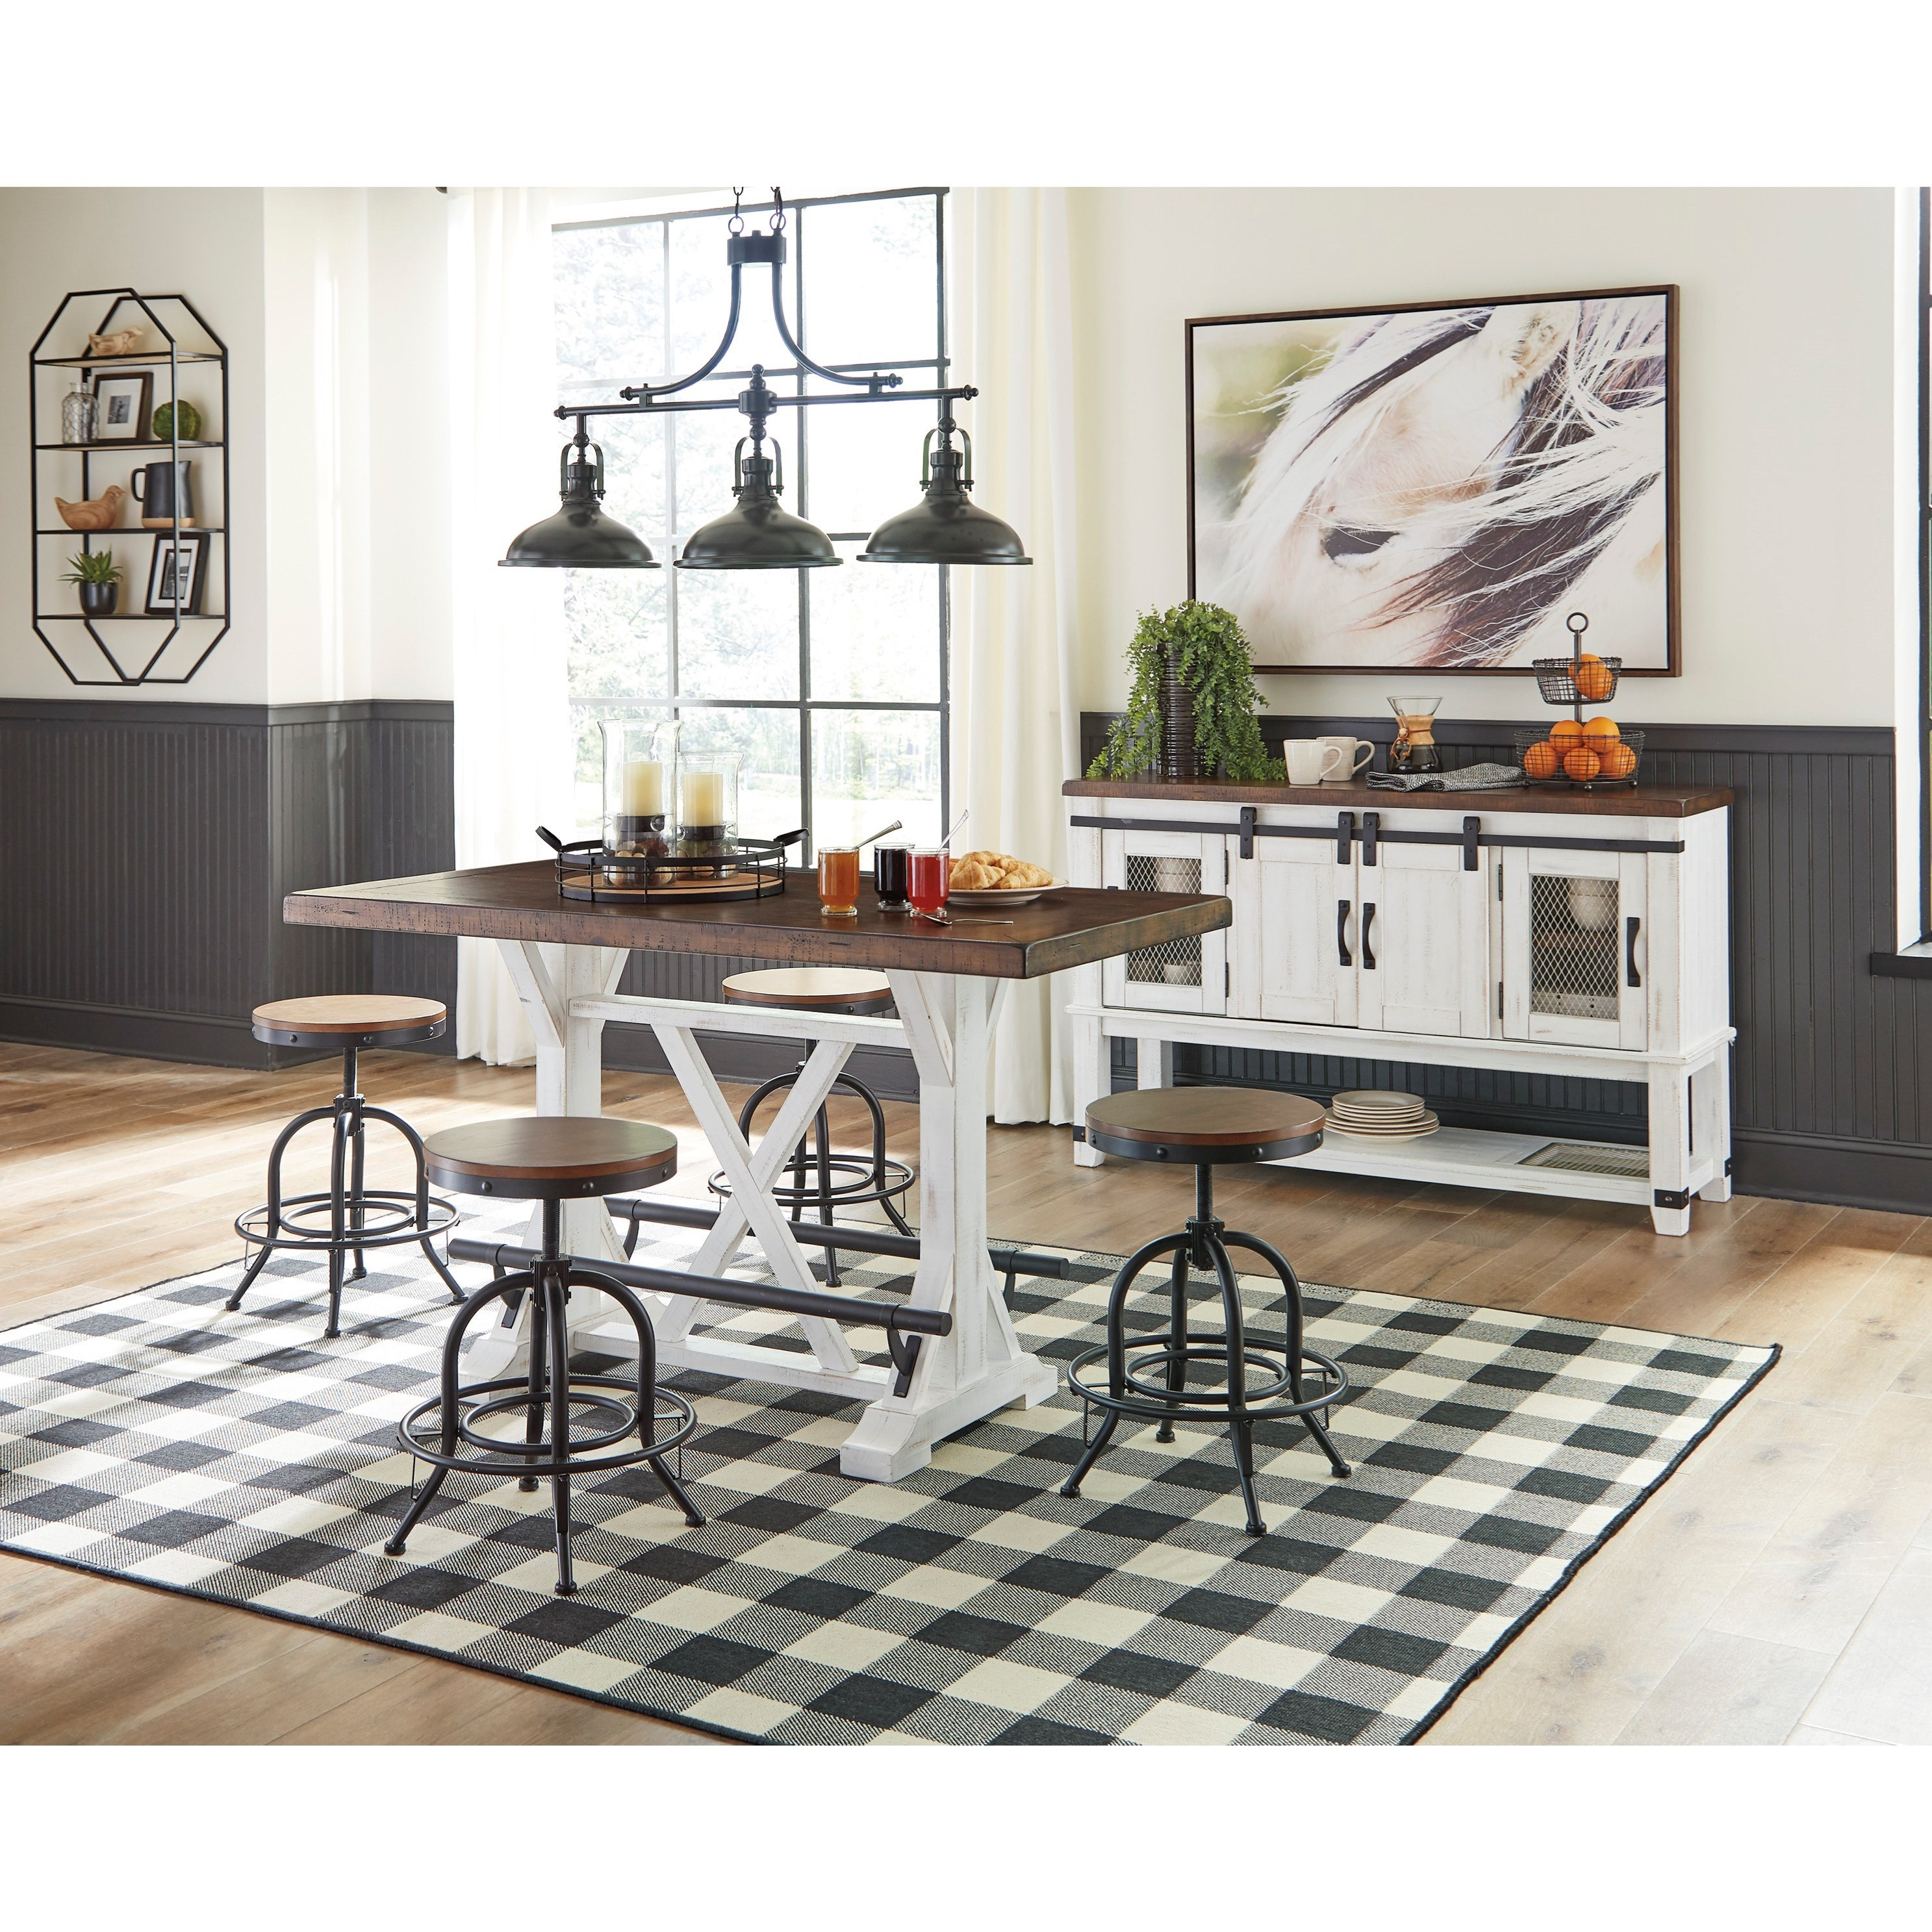 Standard Furniture Brooklyn 5 Piece Counter Height Dining: Signature Design By Ashley Valebeck 5-Piece Counter Height